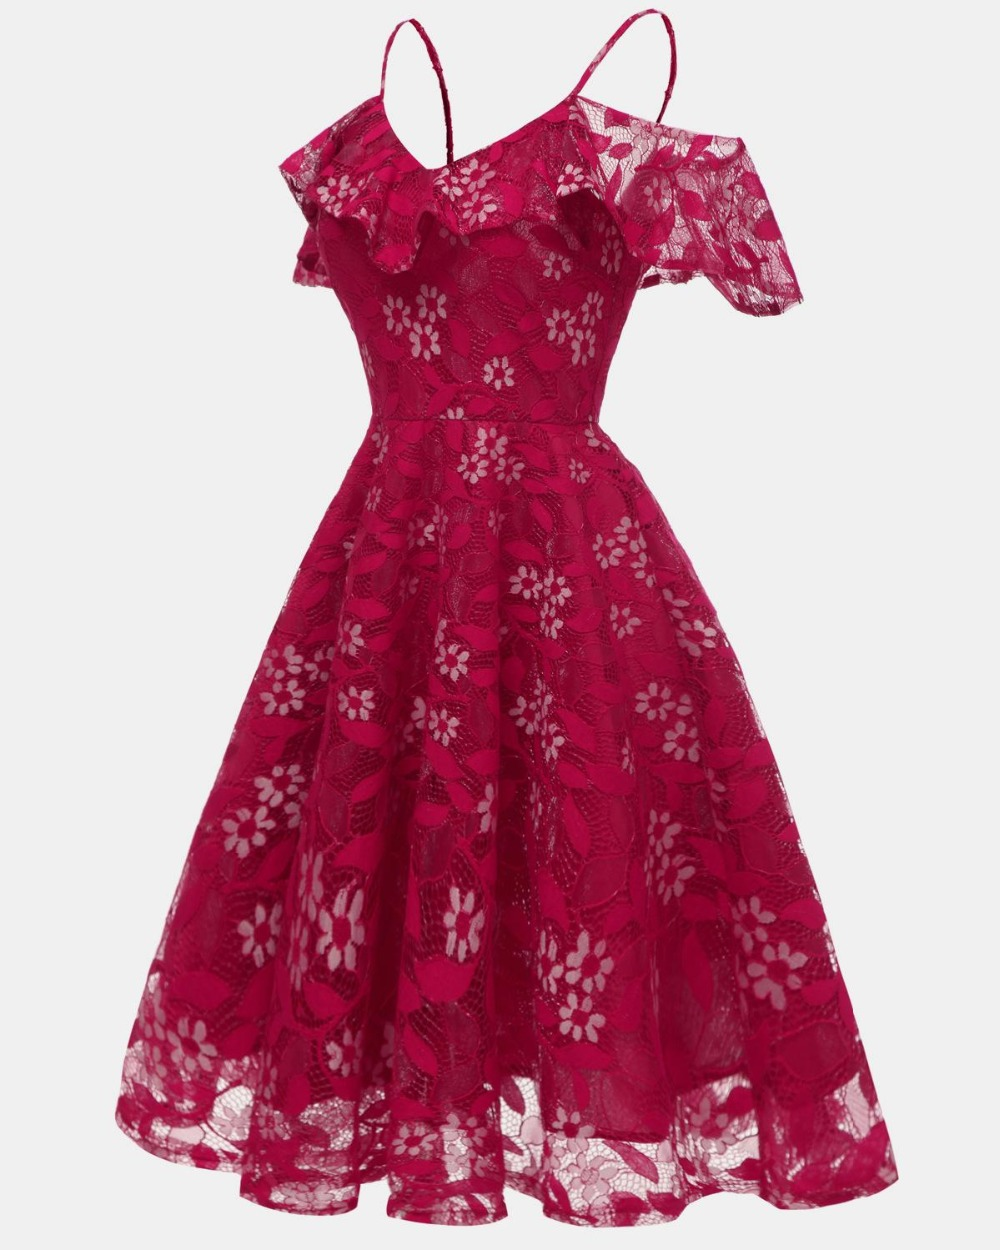 2019-Sexy-Short-Evening-Dress-Lace-burgundy-A-line-Party-Formal-Dress-off-shoulder-Homecoming-Graduation (1)